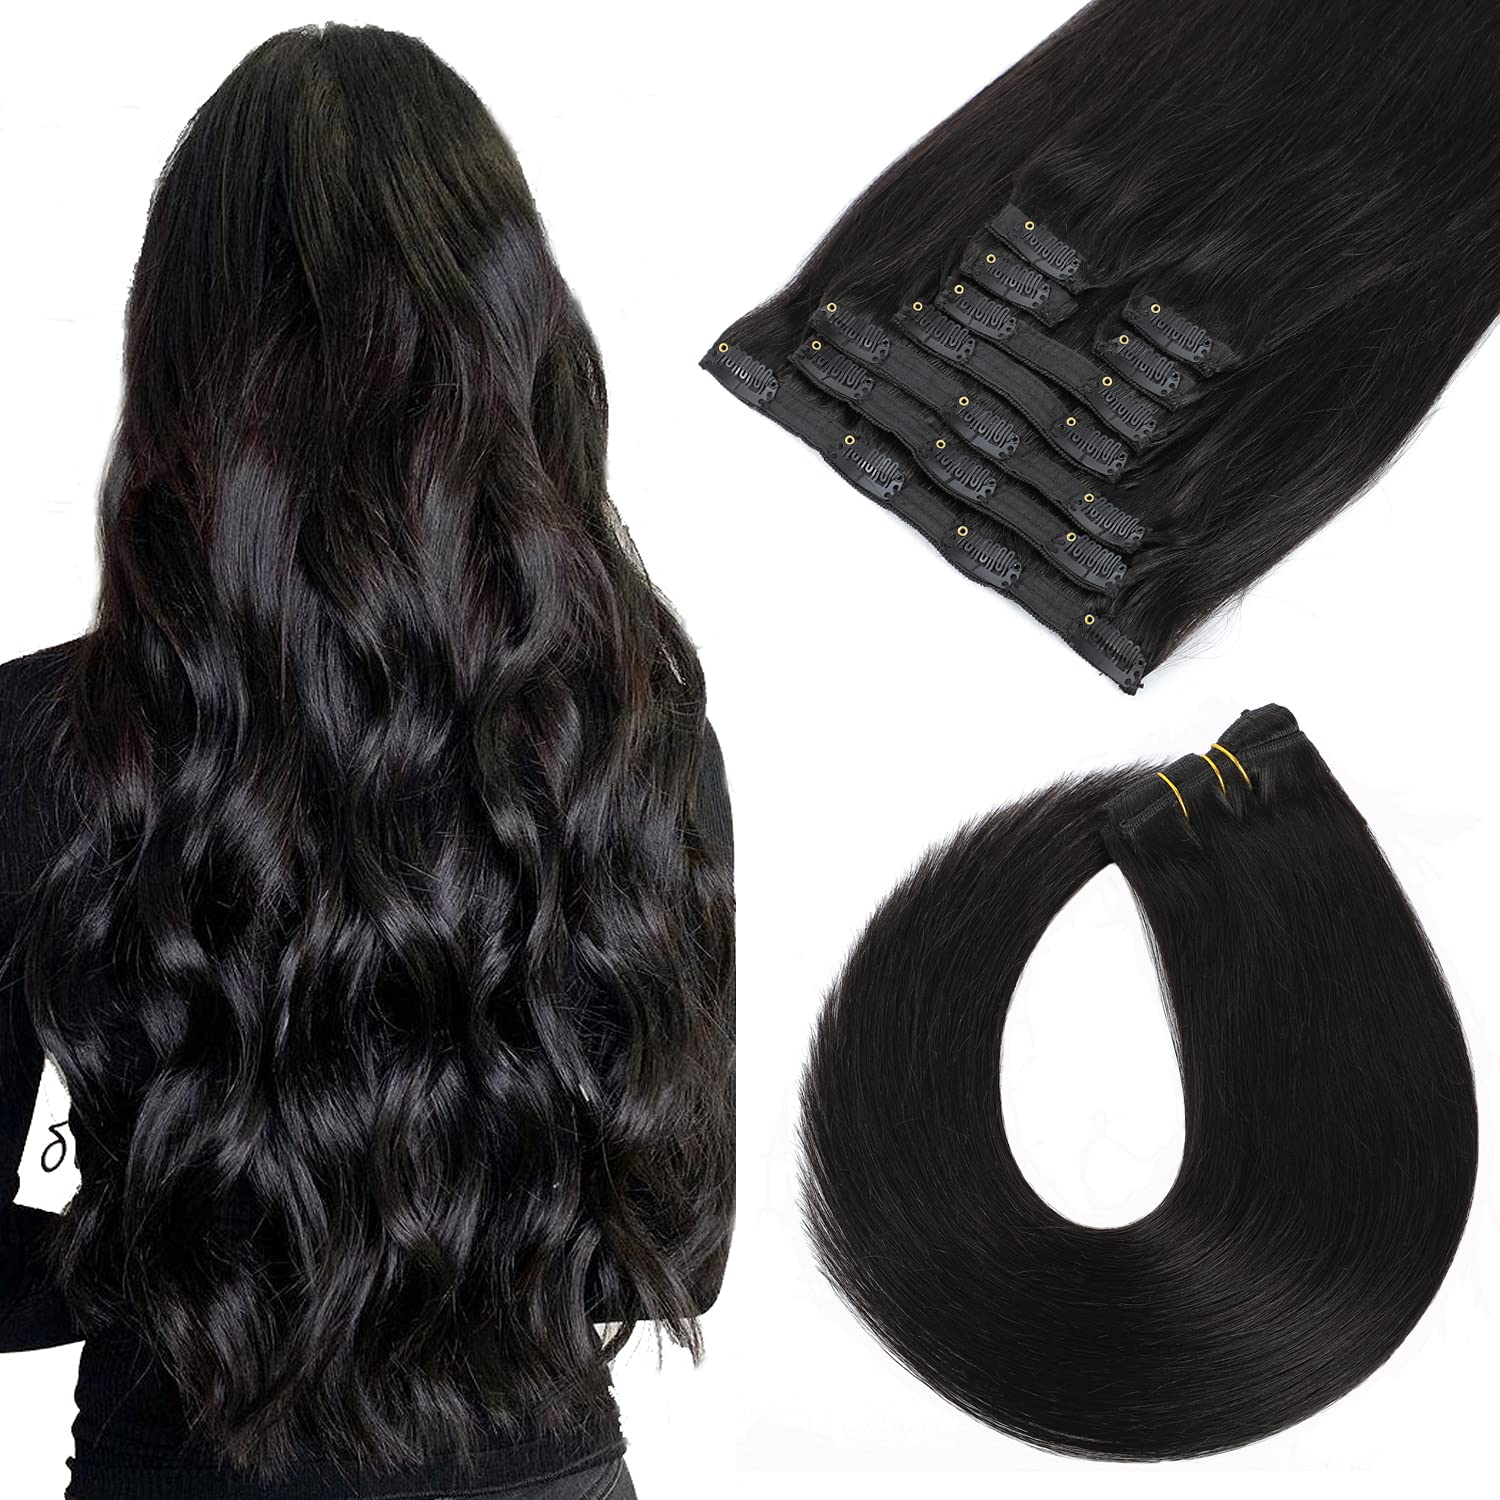 Clip in Human Hair Extensions Natural Inch Black 14 Inventory Sales of SALE items from new works cleanup selling sale 9pcs 120g Cl